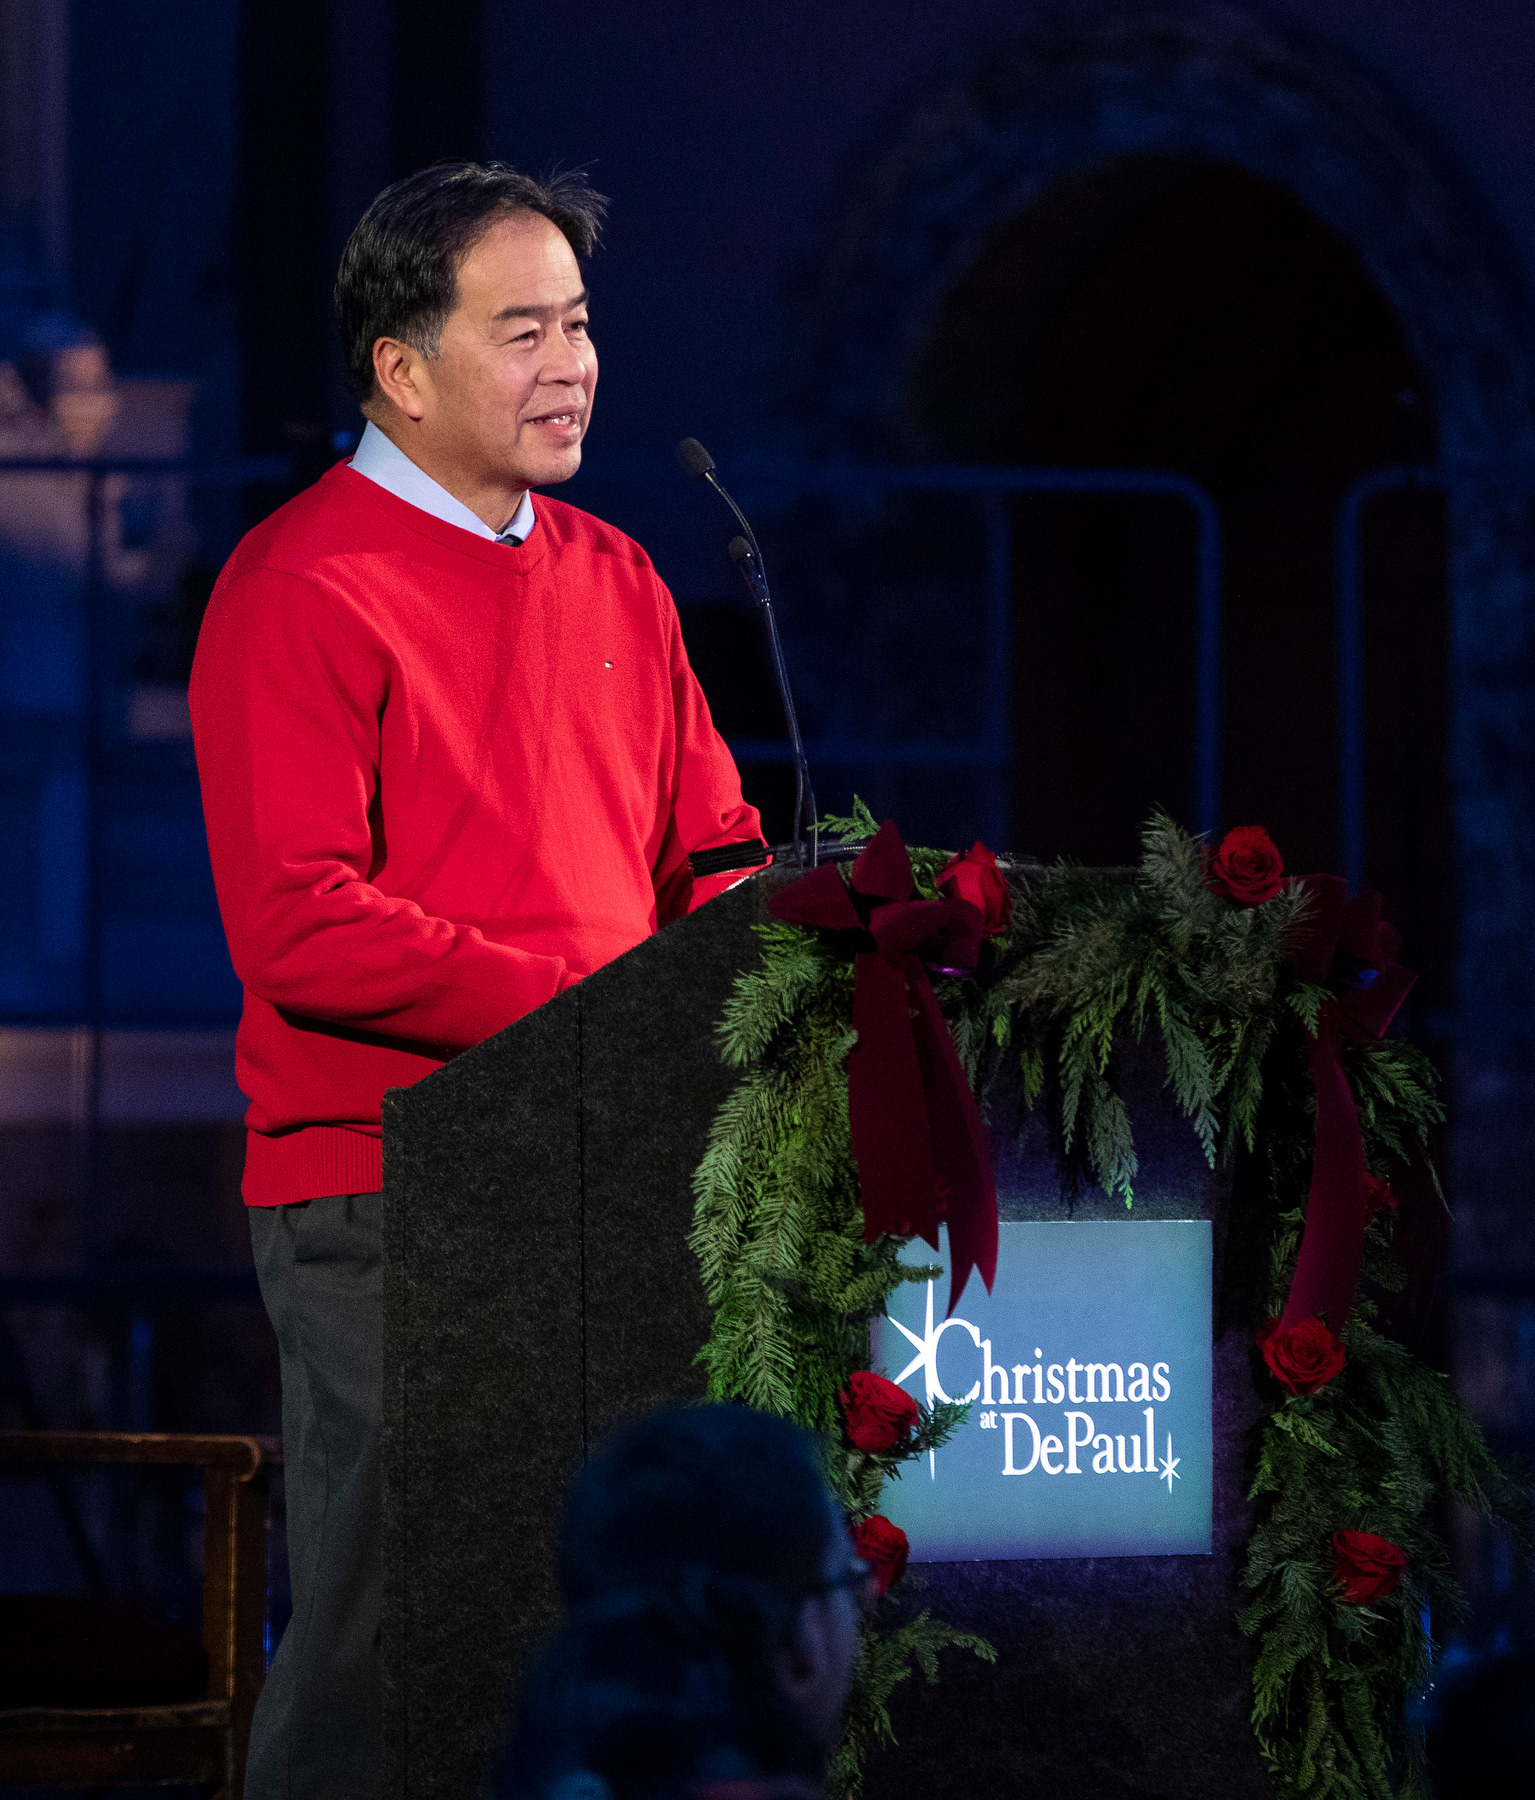 A. Gabriel Esteban, Ph.D., president of DePaul, greets the audeince inside St. Vincent de Paul parish Church for the seaon's first peformance of Christmas at DePaul. (DePaul University/Jamie Moncrief)